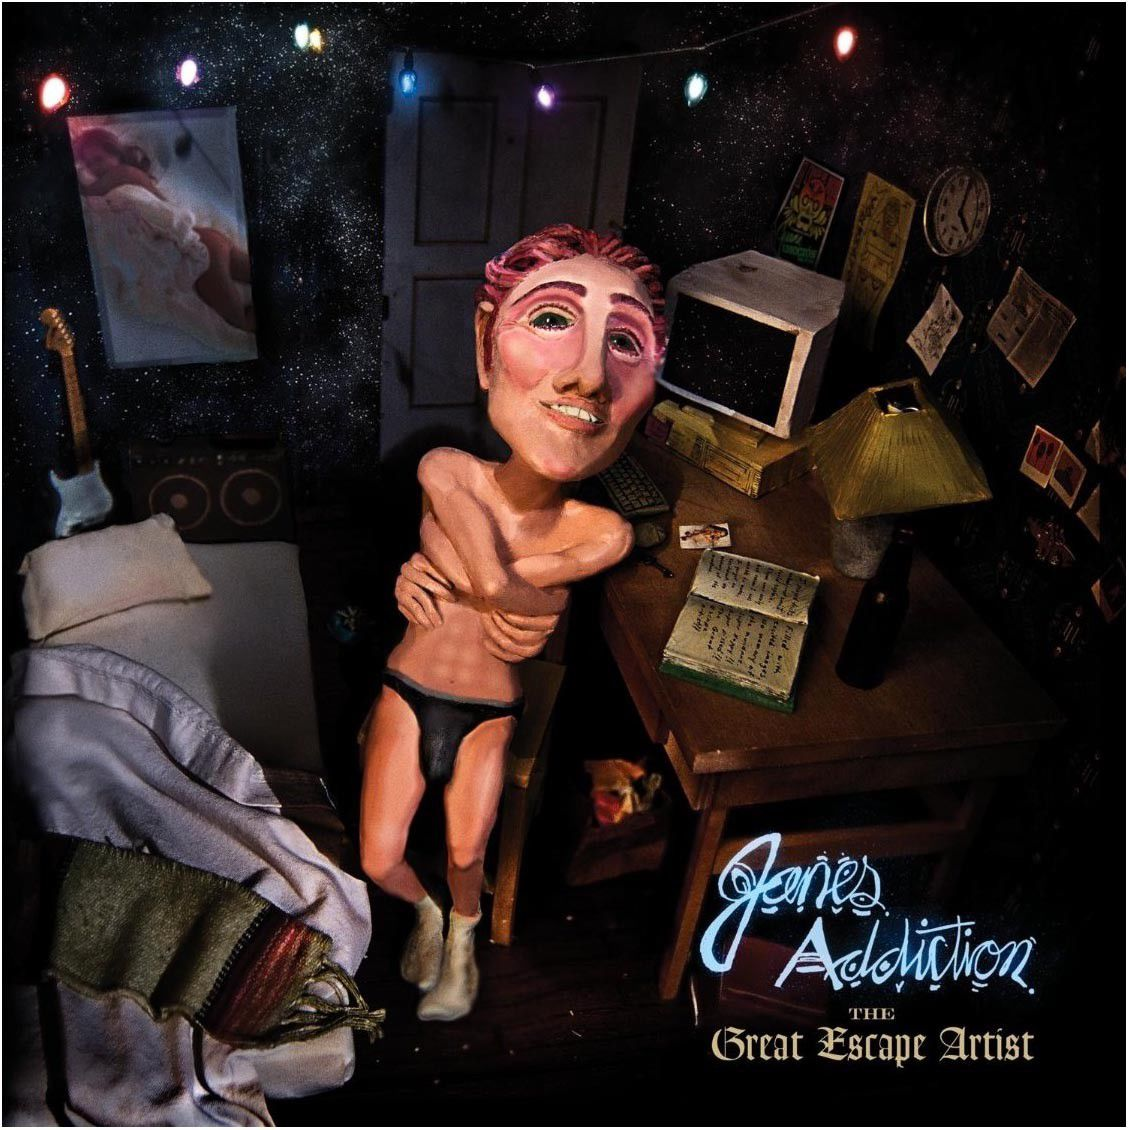 Review: Jane's Addiction's latest album